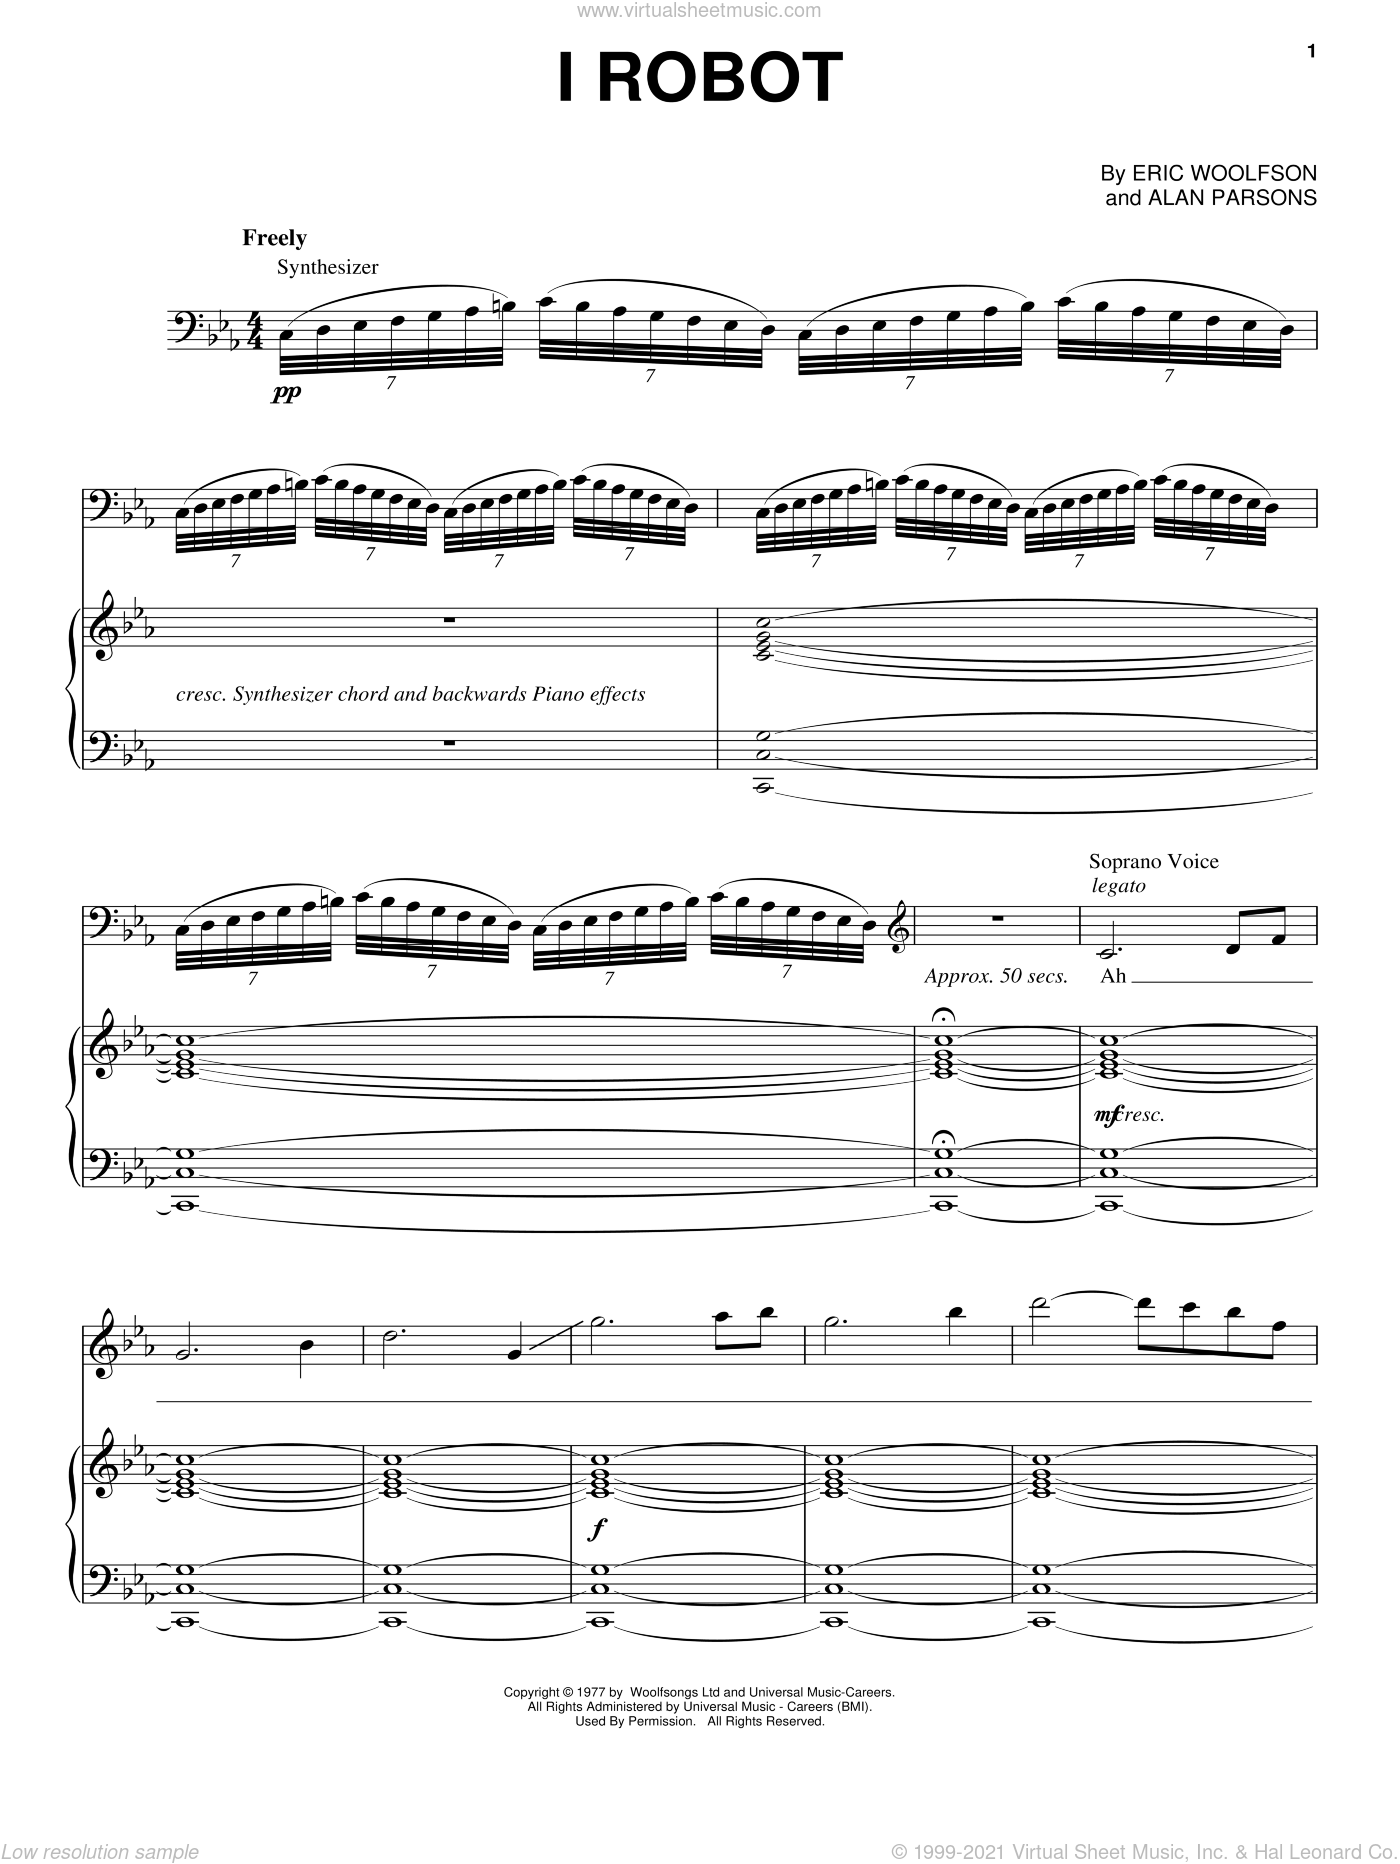 I Robot sheet music for voice, piano or guitar by Alan Parsons Project, Alan Parsons and Eric Woolfson, intermediate skill level